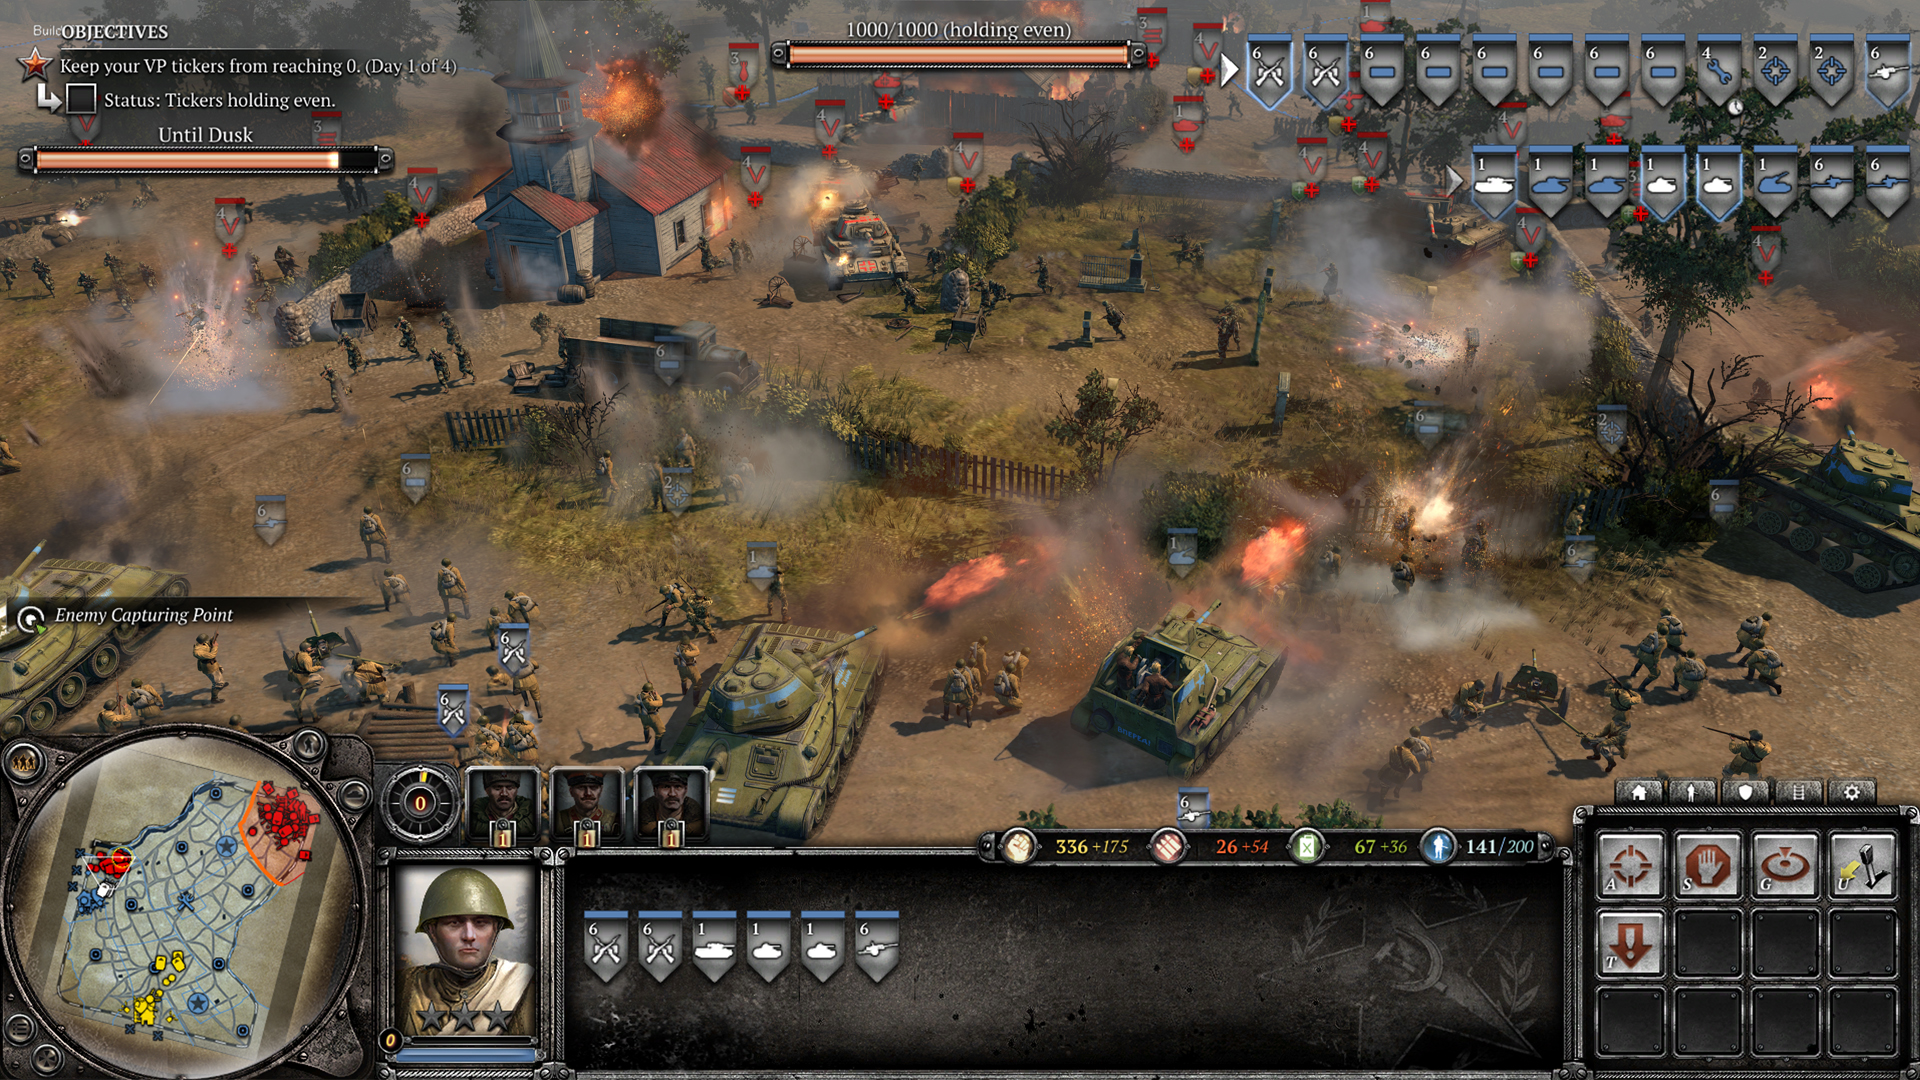 Představen Theater of War mód pro Company of Heroes 2 80567